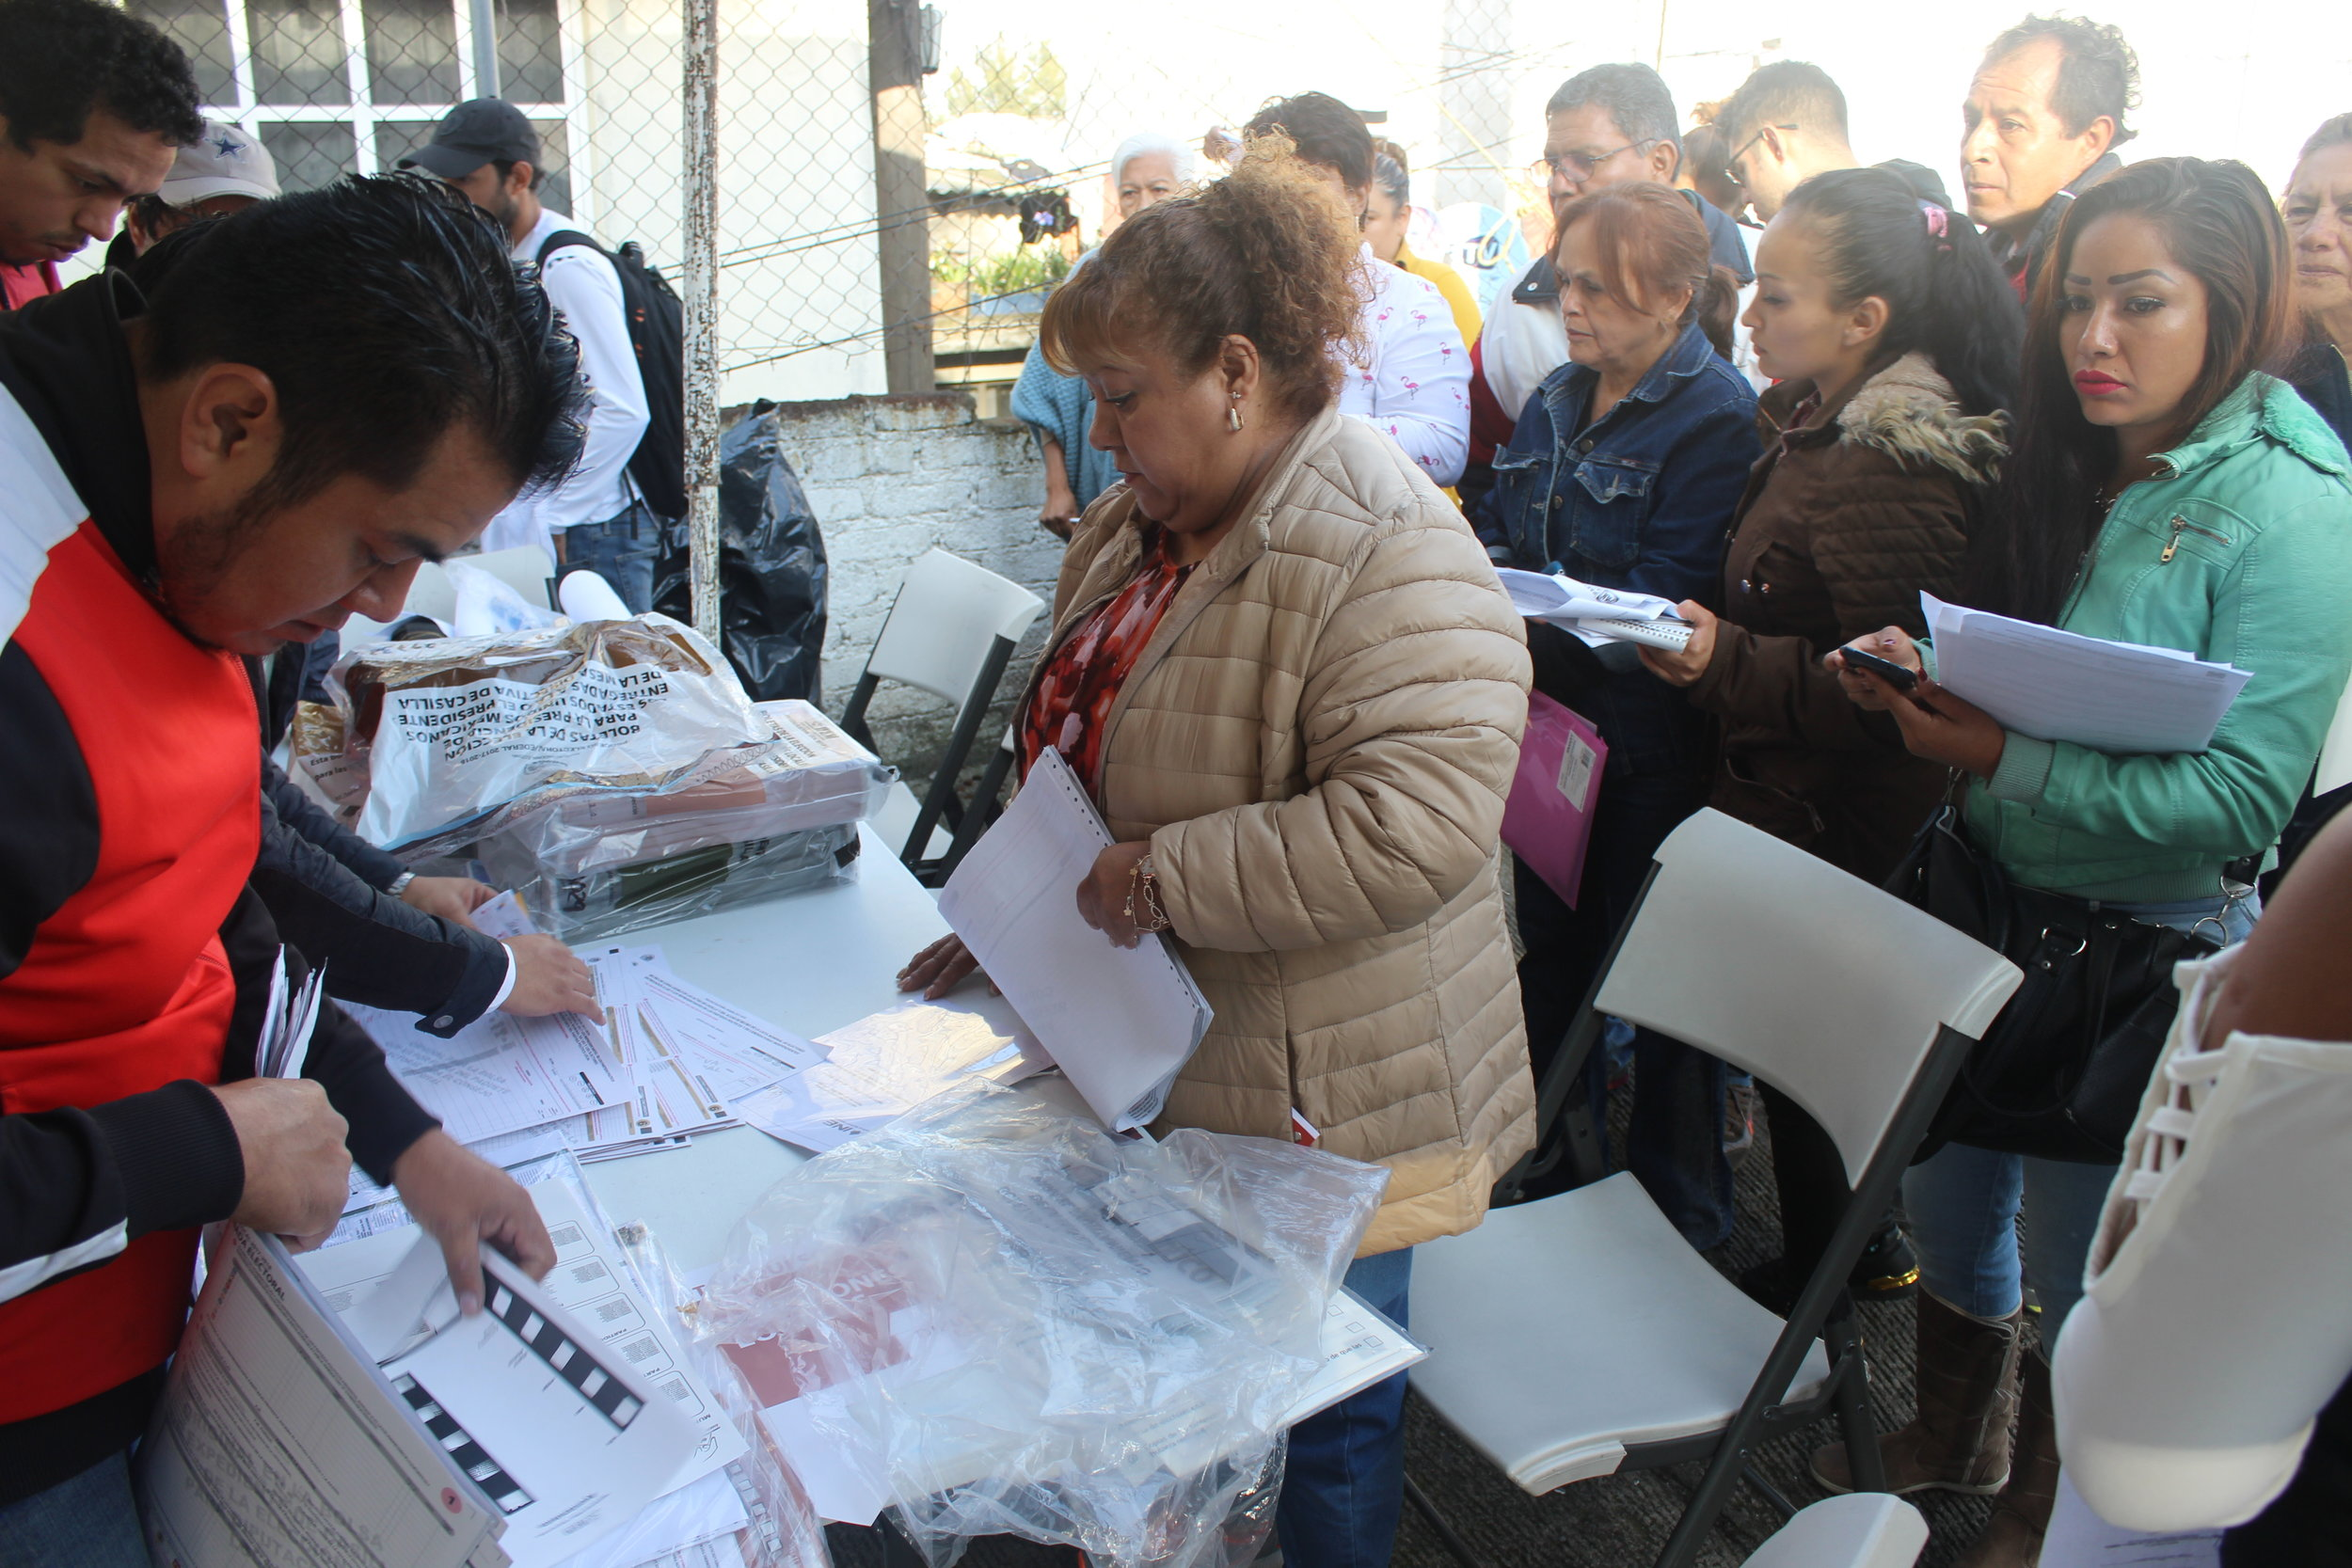 Political party representatives overseeing the electoral process at Jardin de Niños John Dewey, Tlalnepantla de Baz, Estado de Mexico, north of Mexico City.